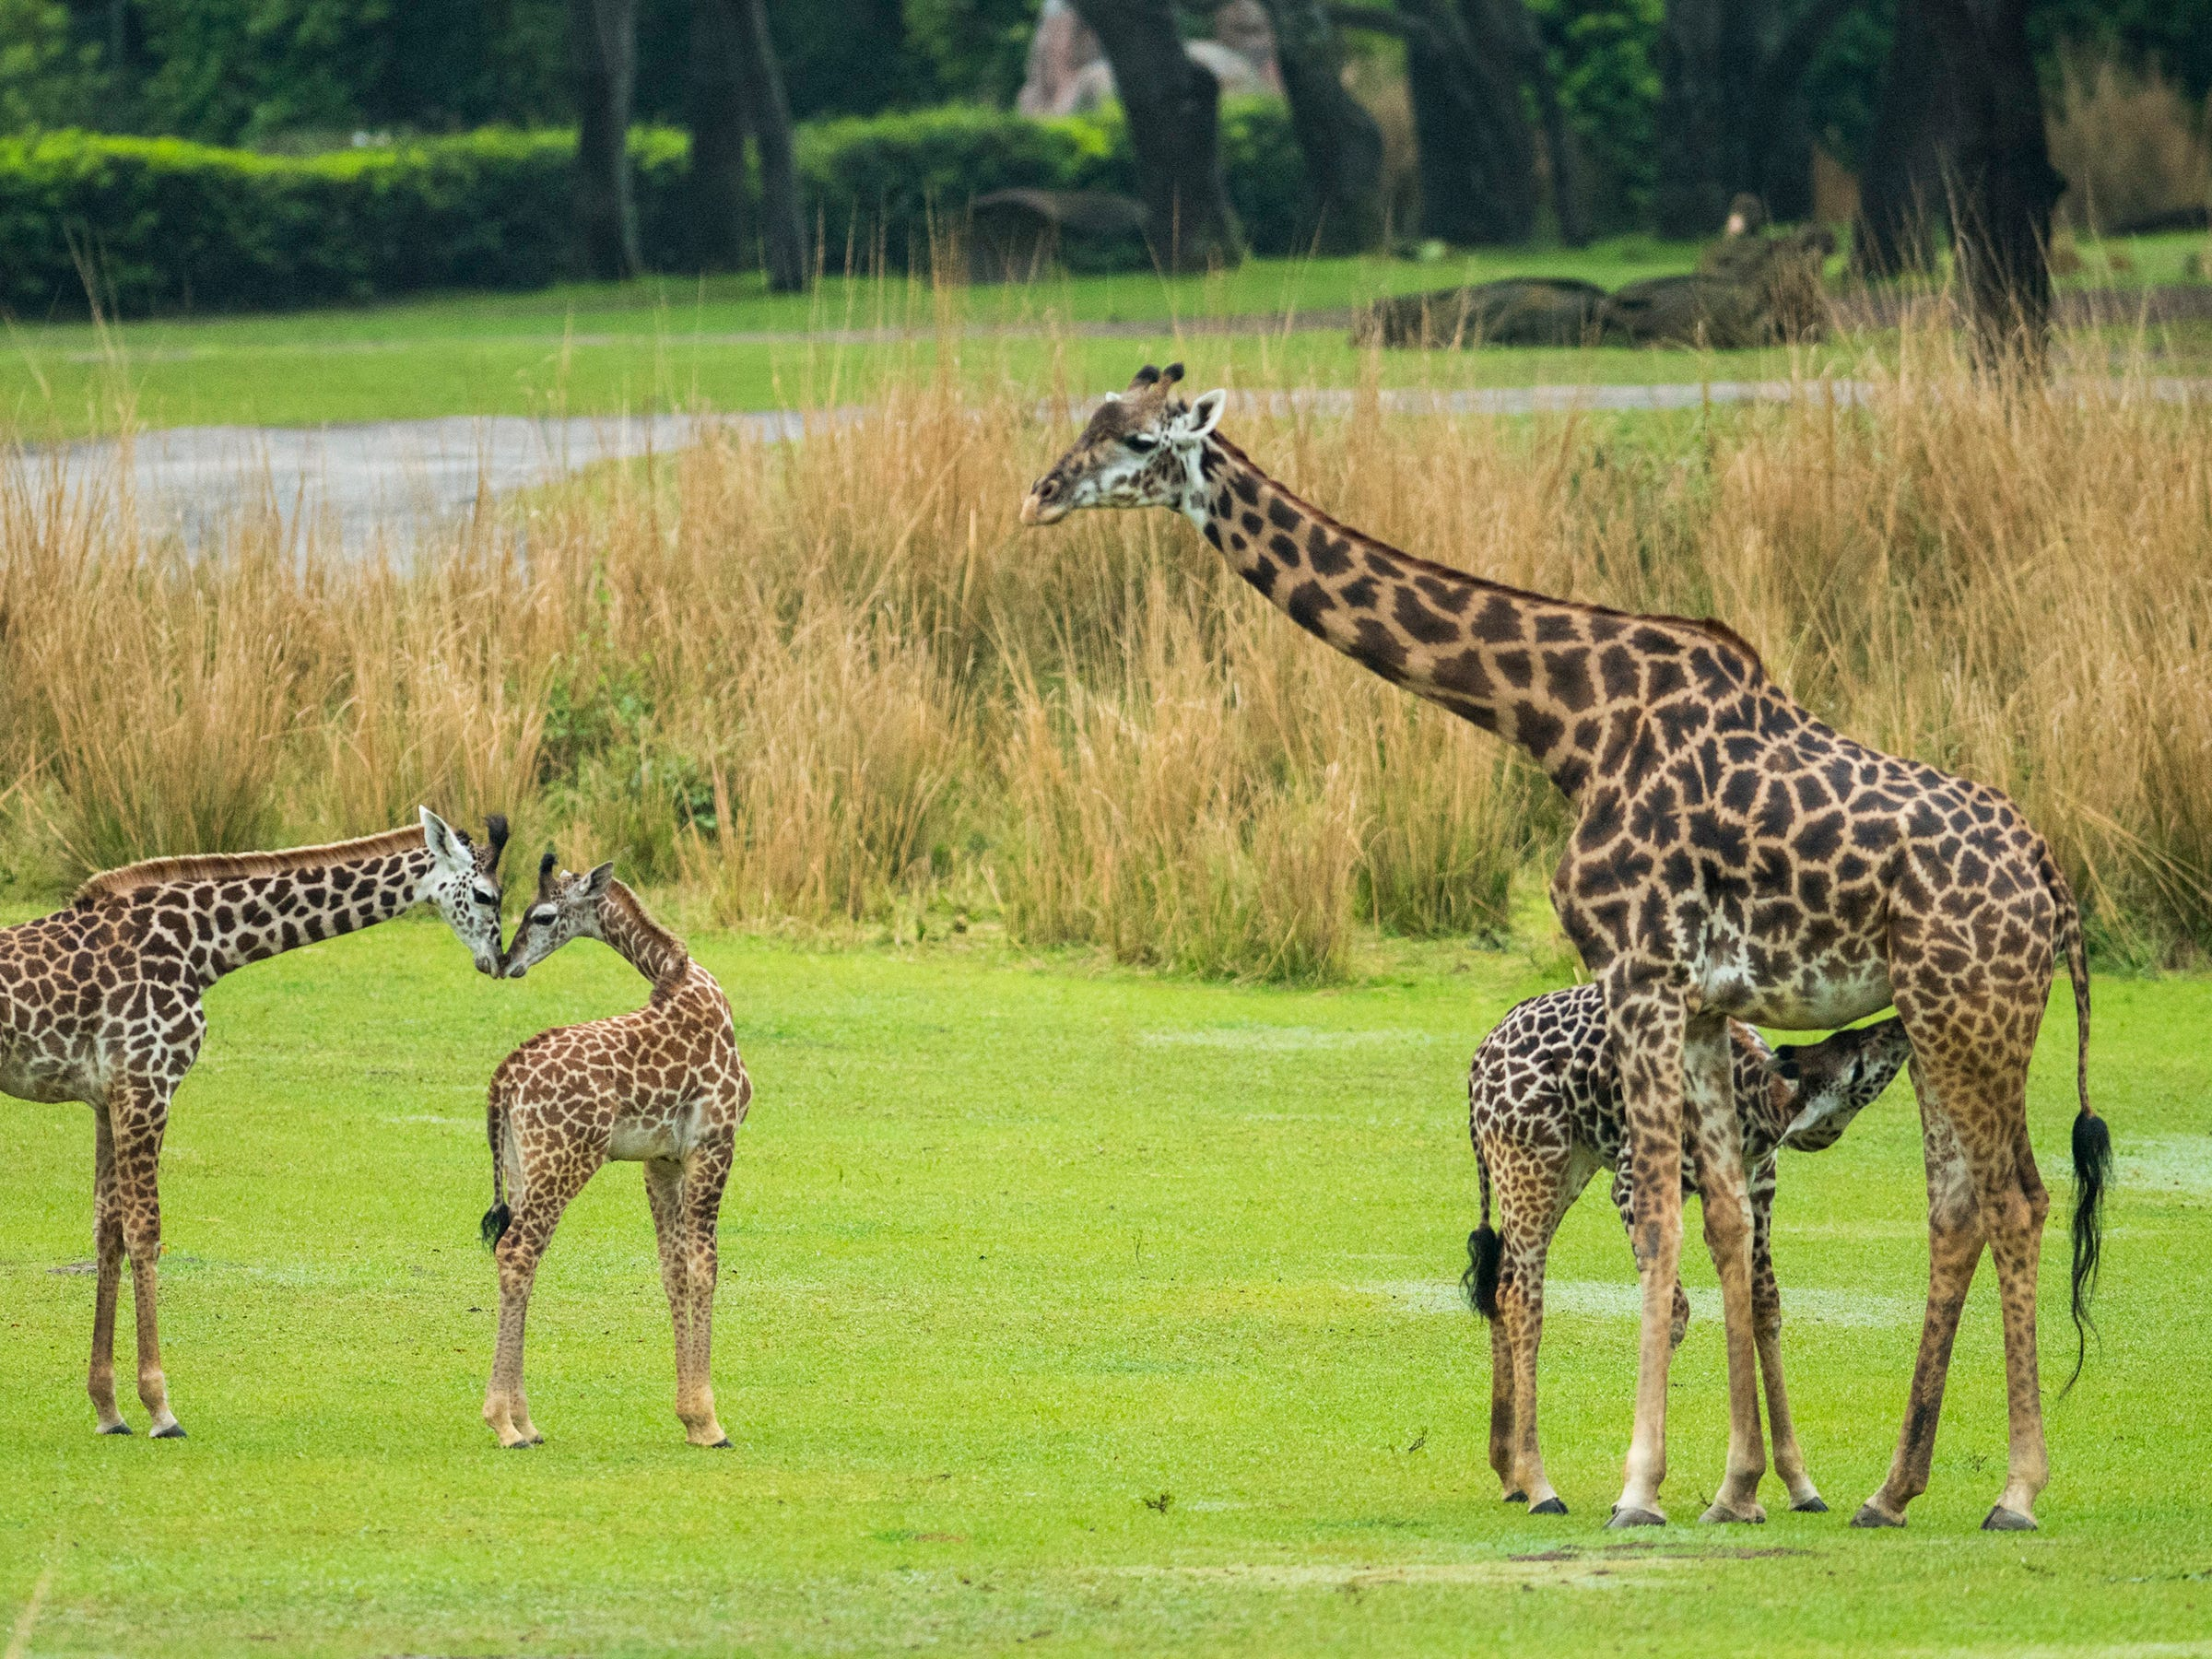 Jabari has spent the past two months bonding with his mom, Mara, in a backstage habitat. He is the first giraffe calf to be born on the savanna at Disney's Animal Kingdom.